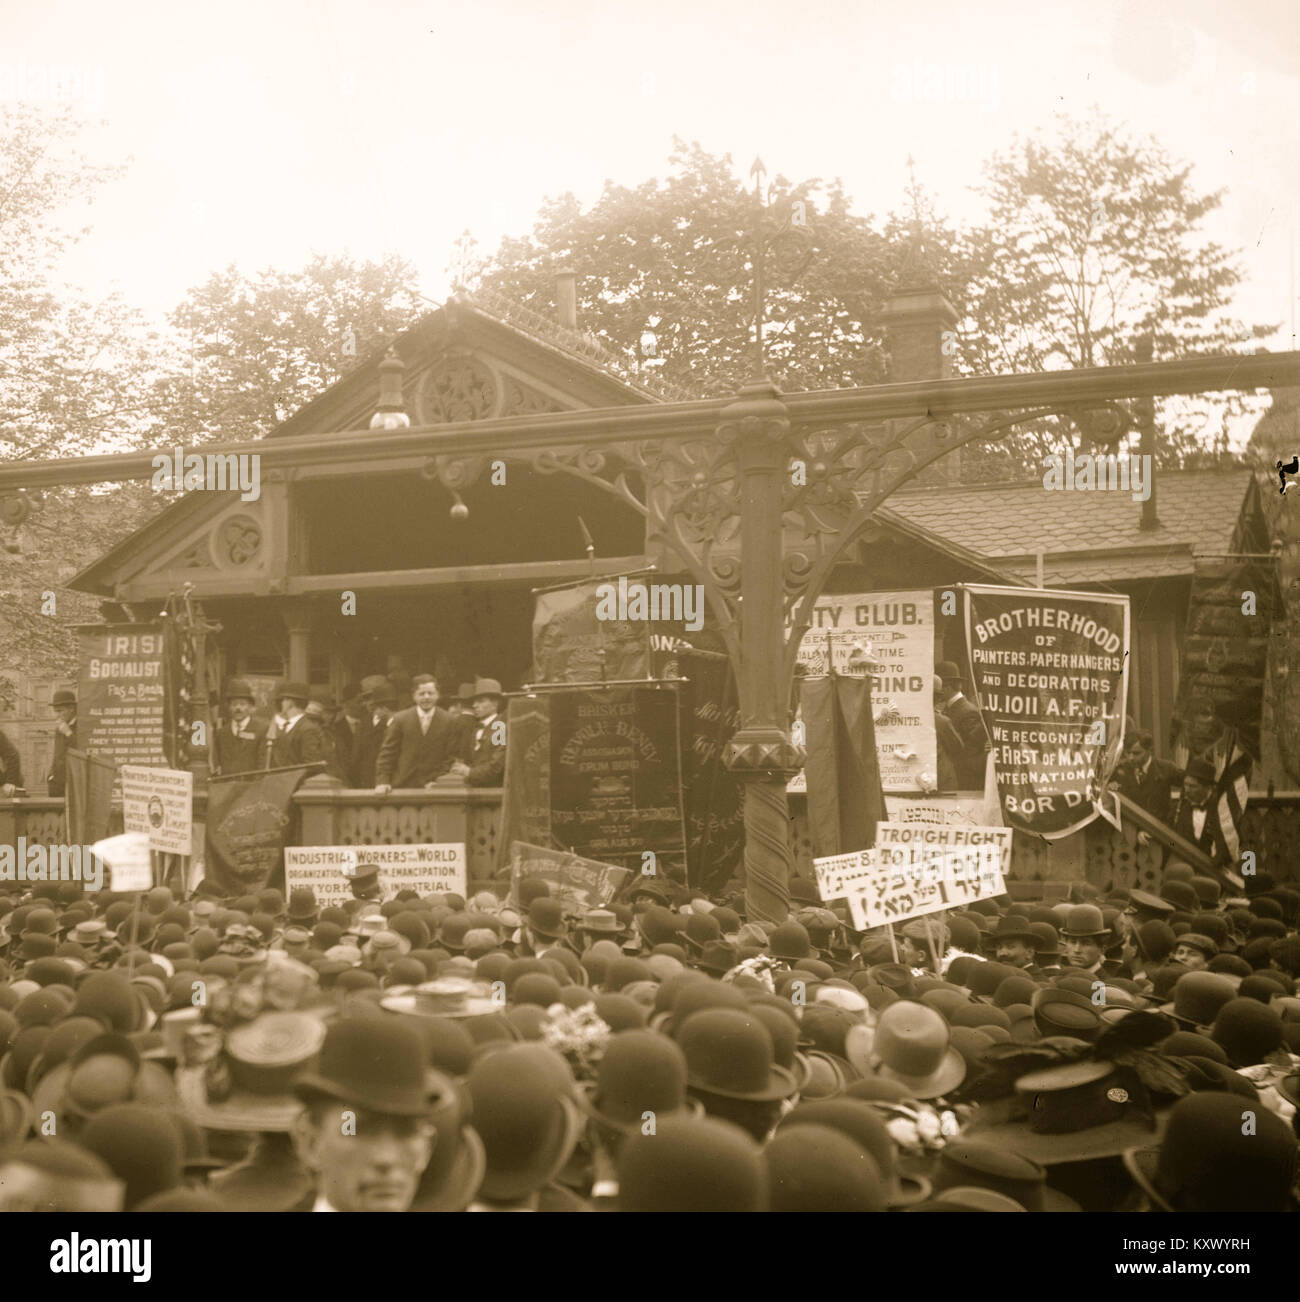 Socialist Rally in Union Square, New York - Stock Image